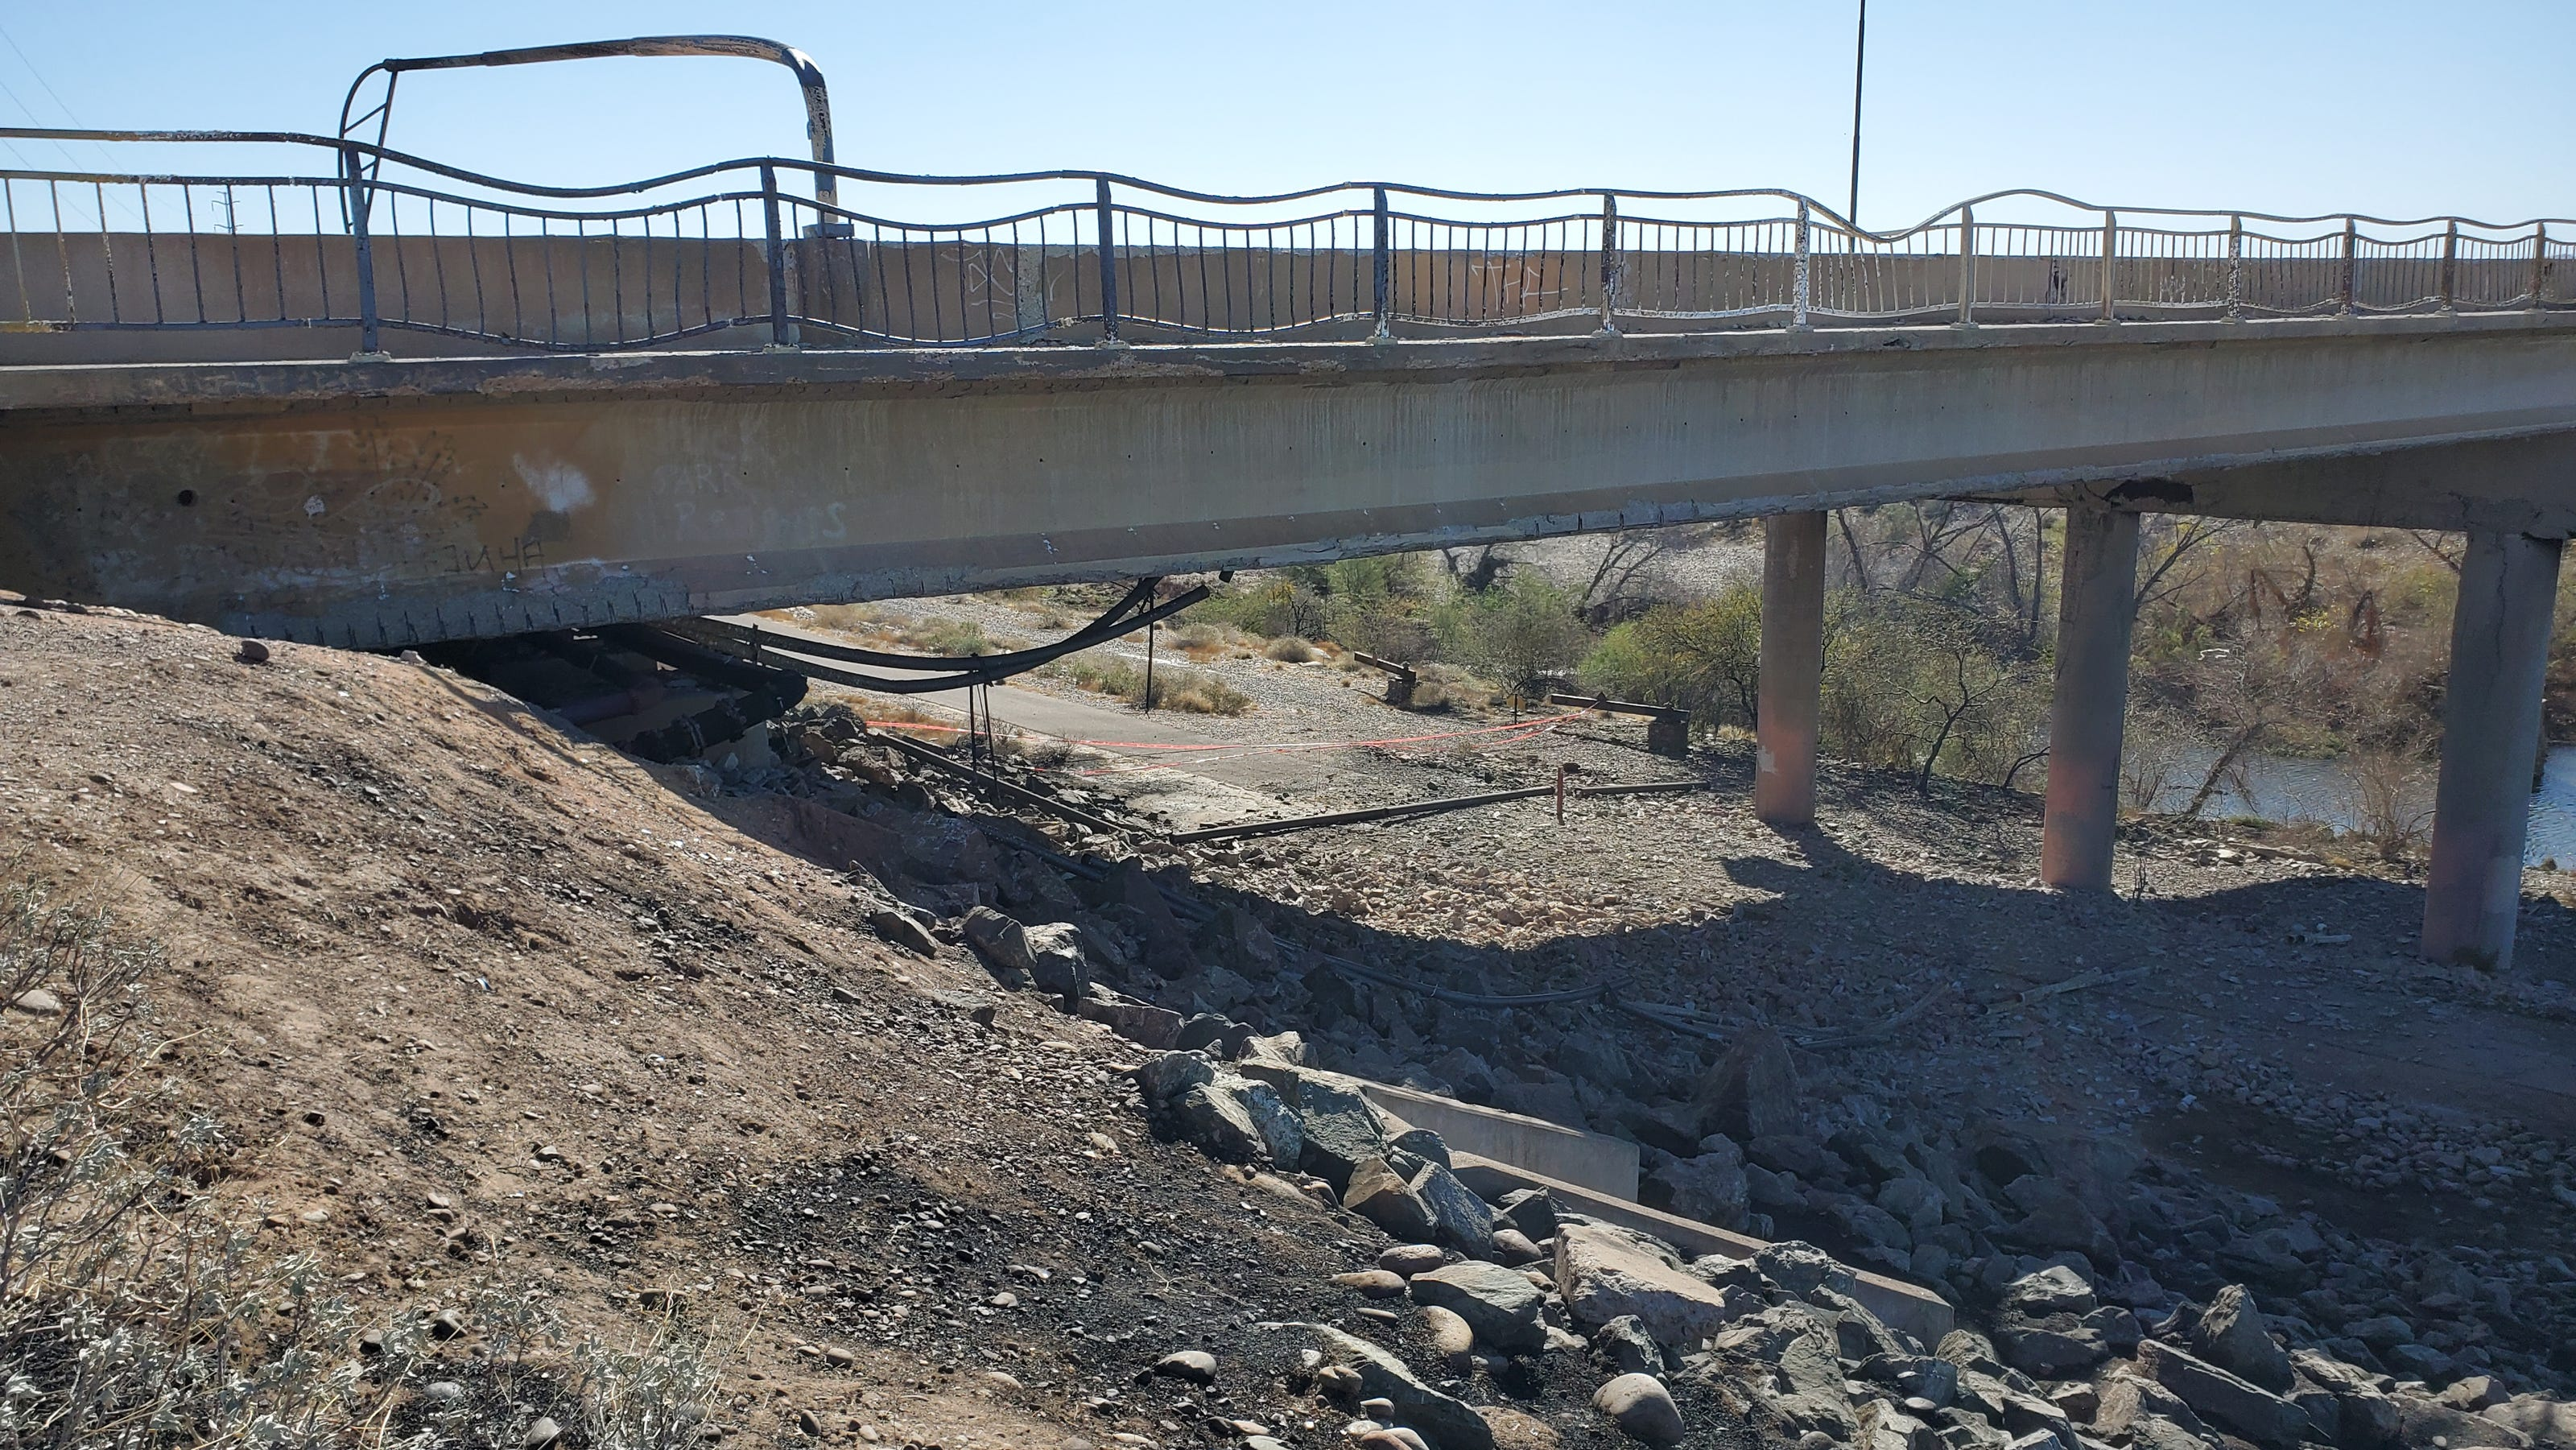 Seventh Street bridge in Phoenix on track to open by September after damaged by massive fire